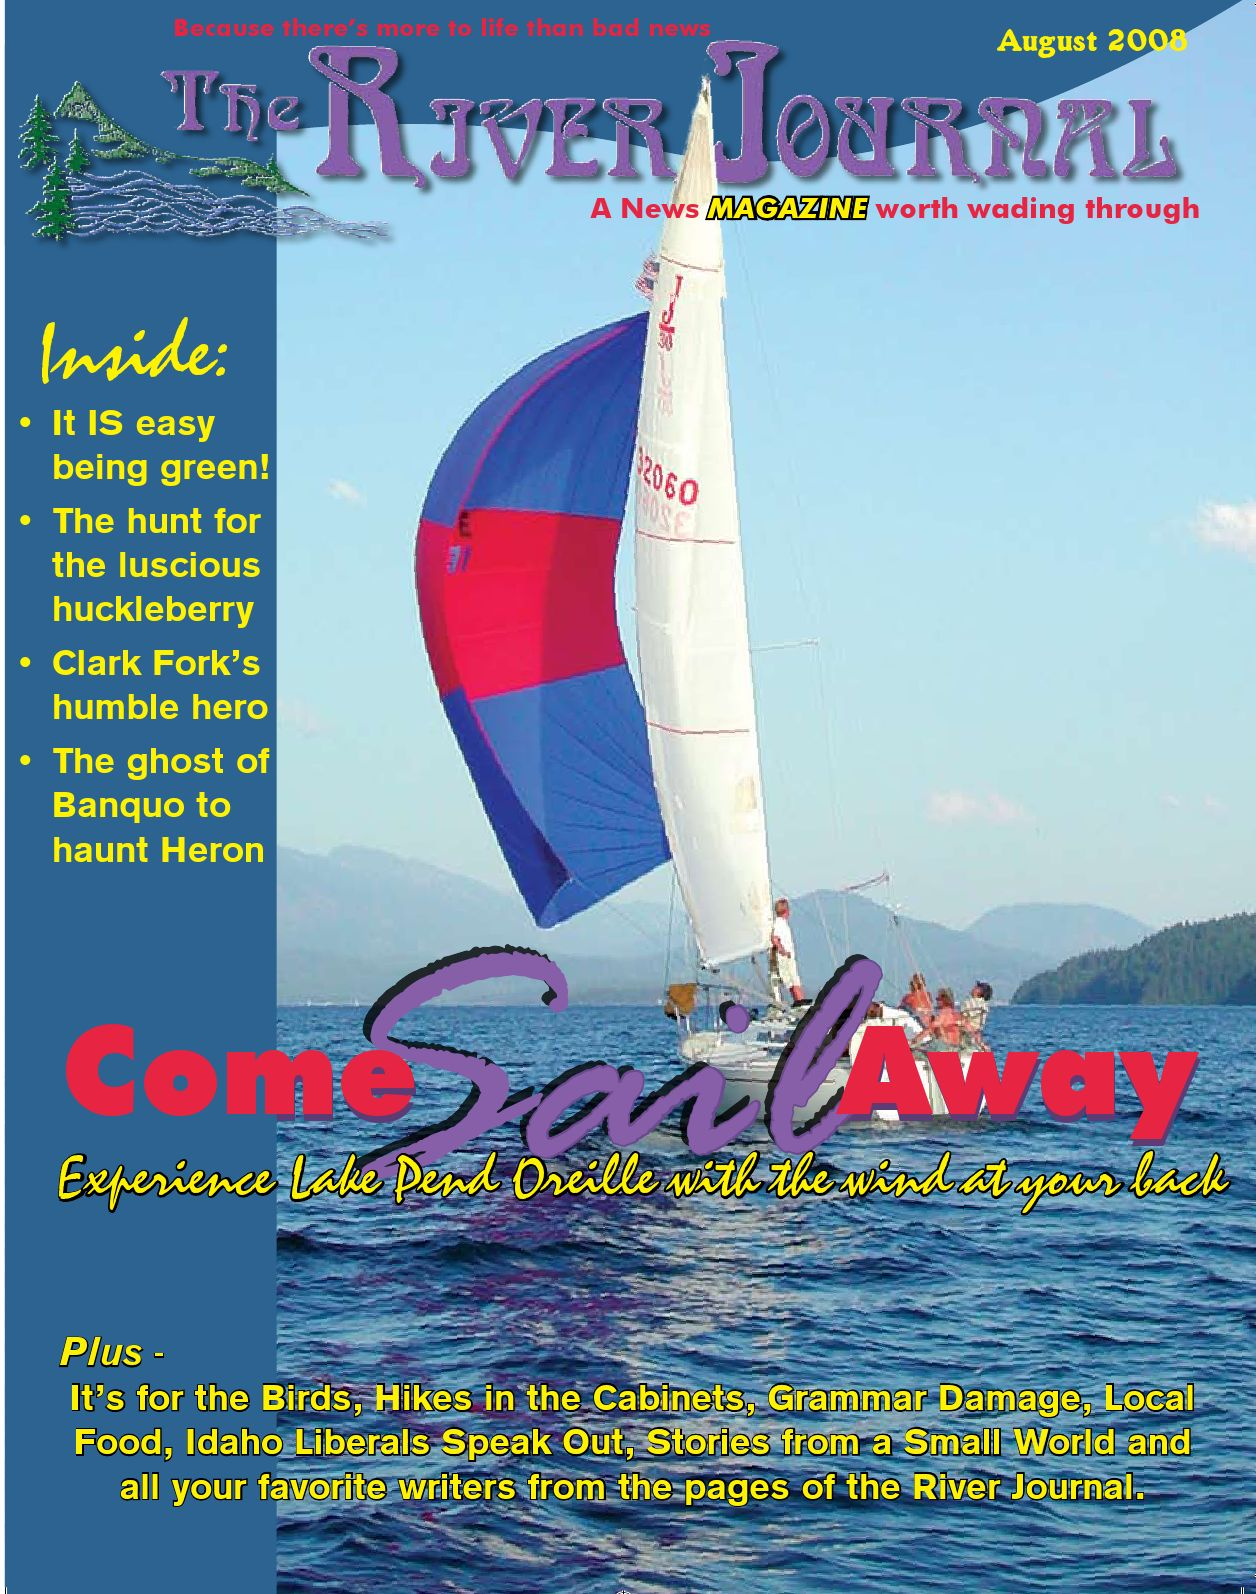 The River Journal August 2008 by The River Journal LLC - issuu